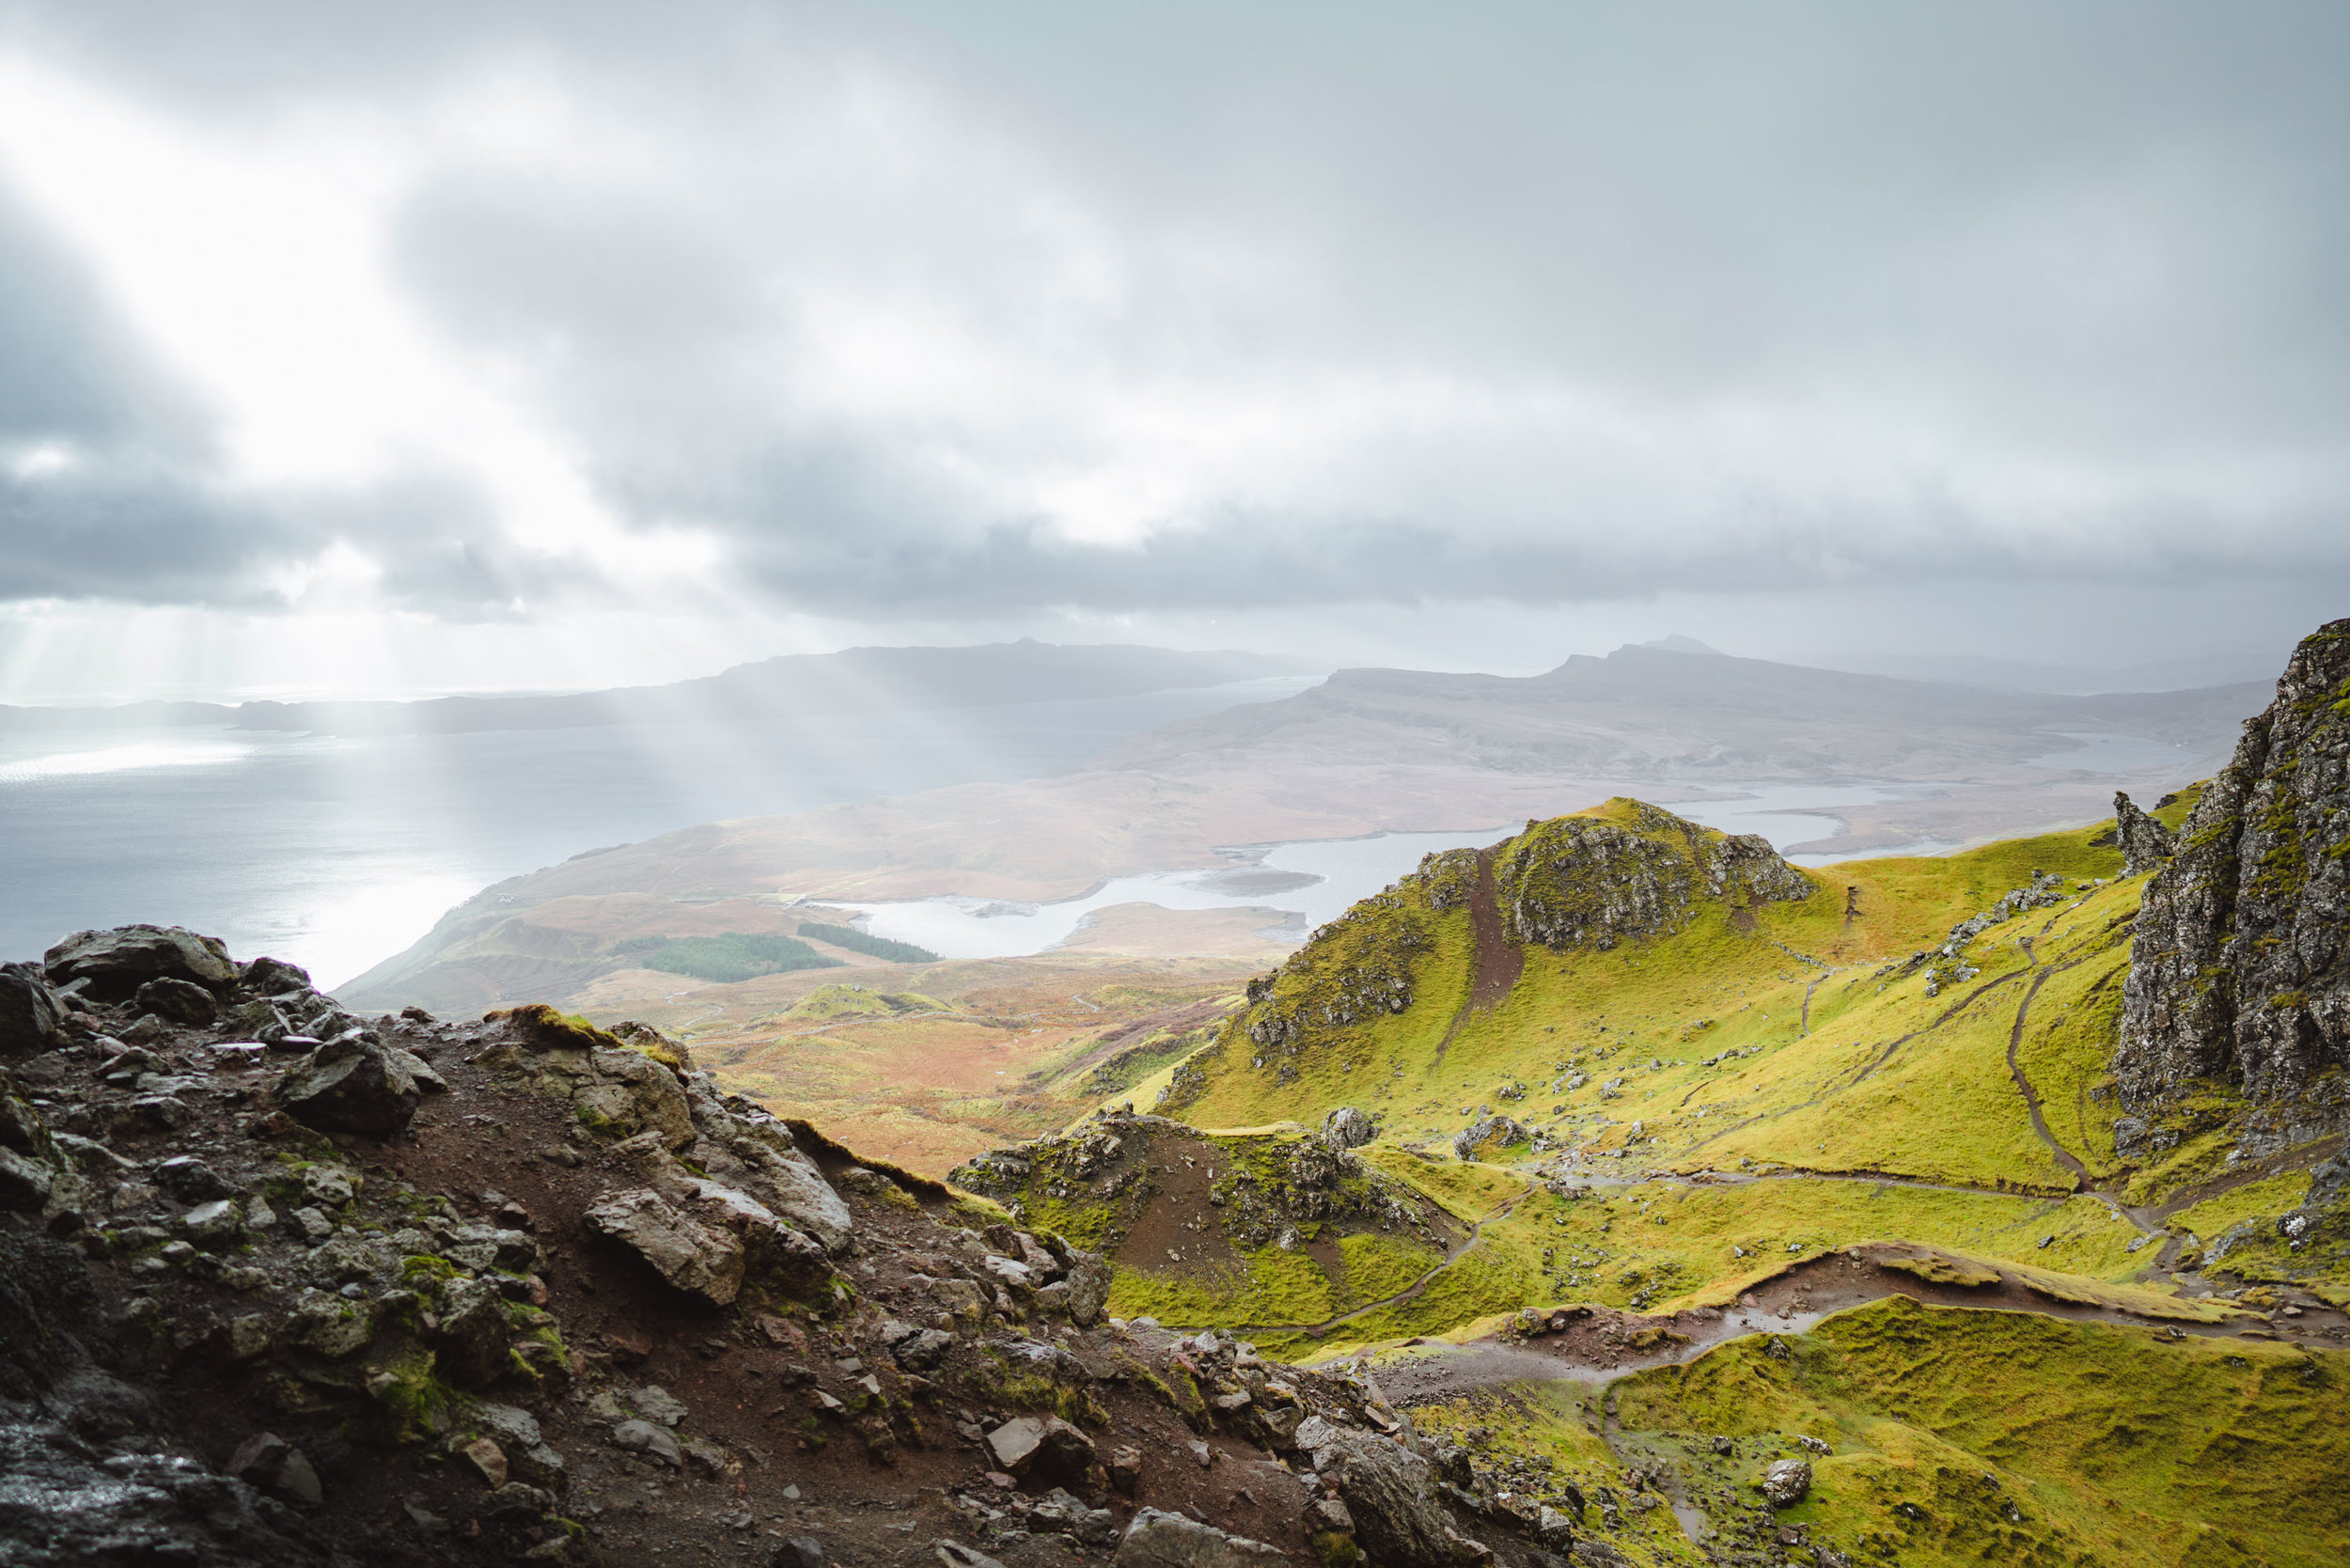 View from Old Man of Storr in Isle of Slye, Scotland